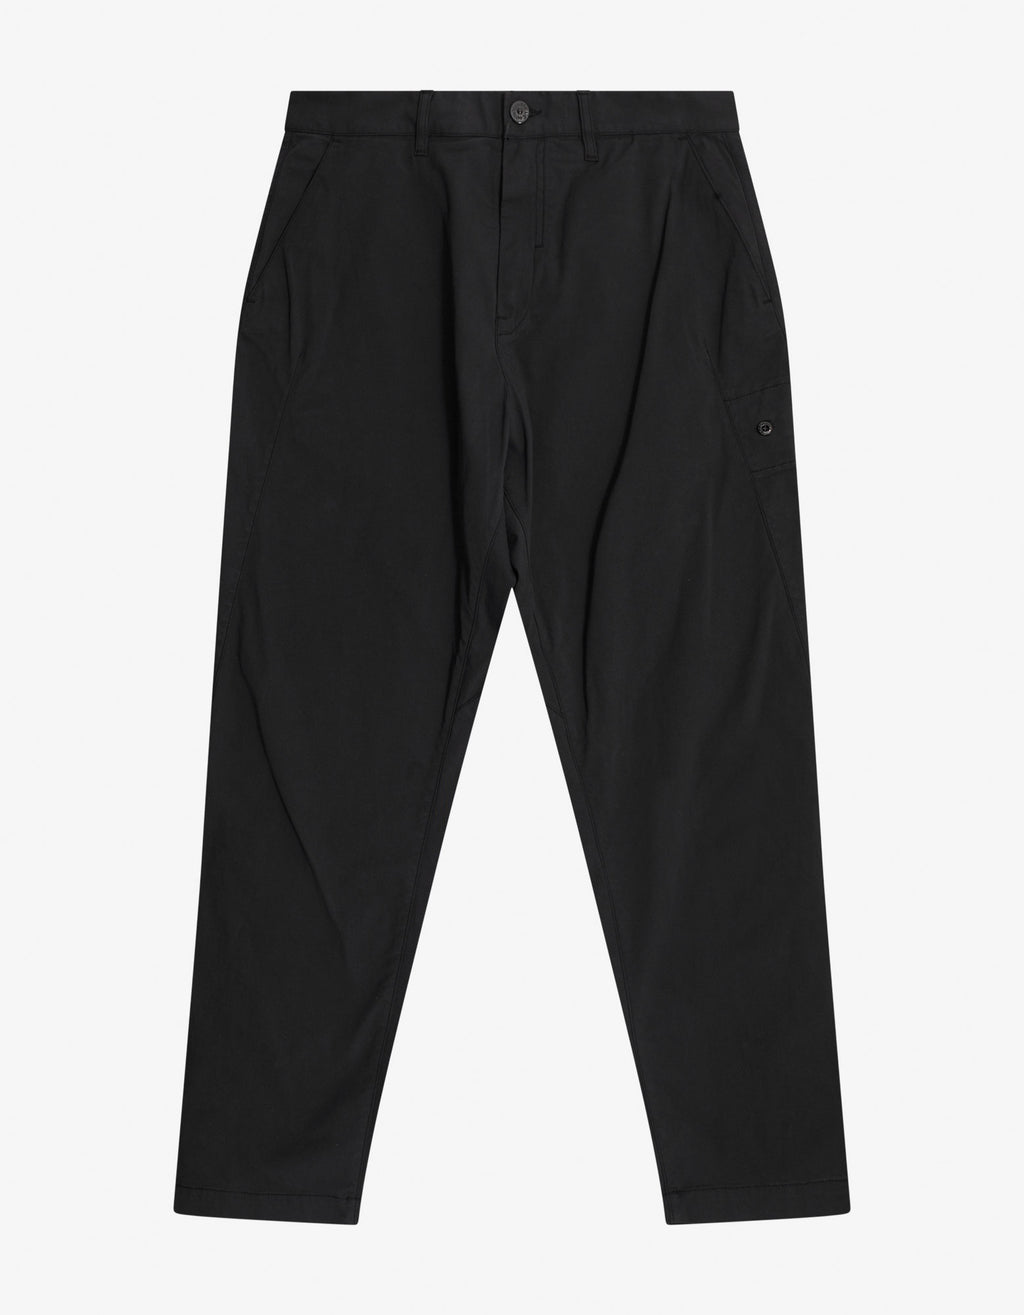 Black Relaxed Fit Trousers